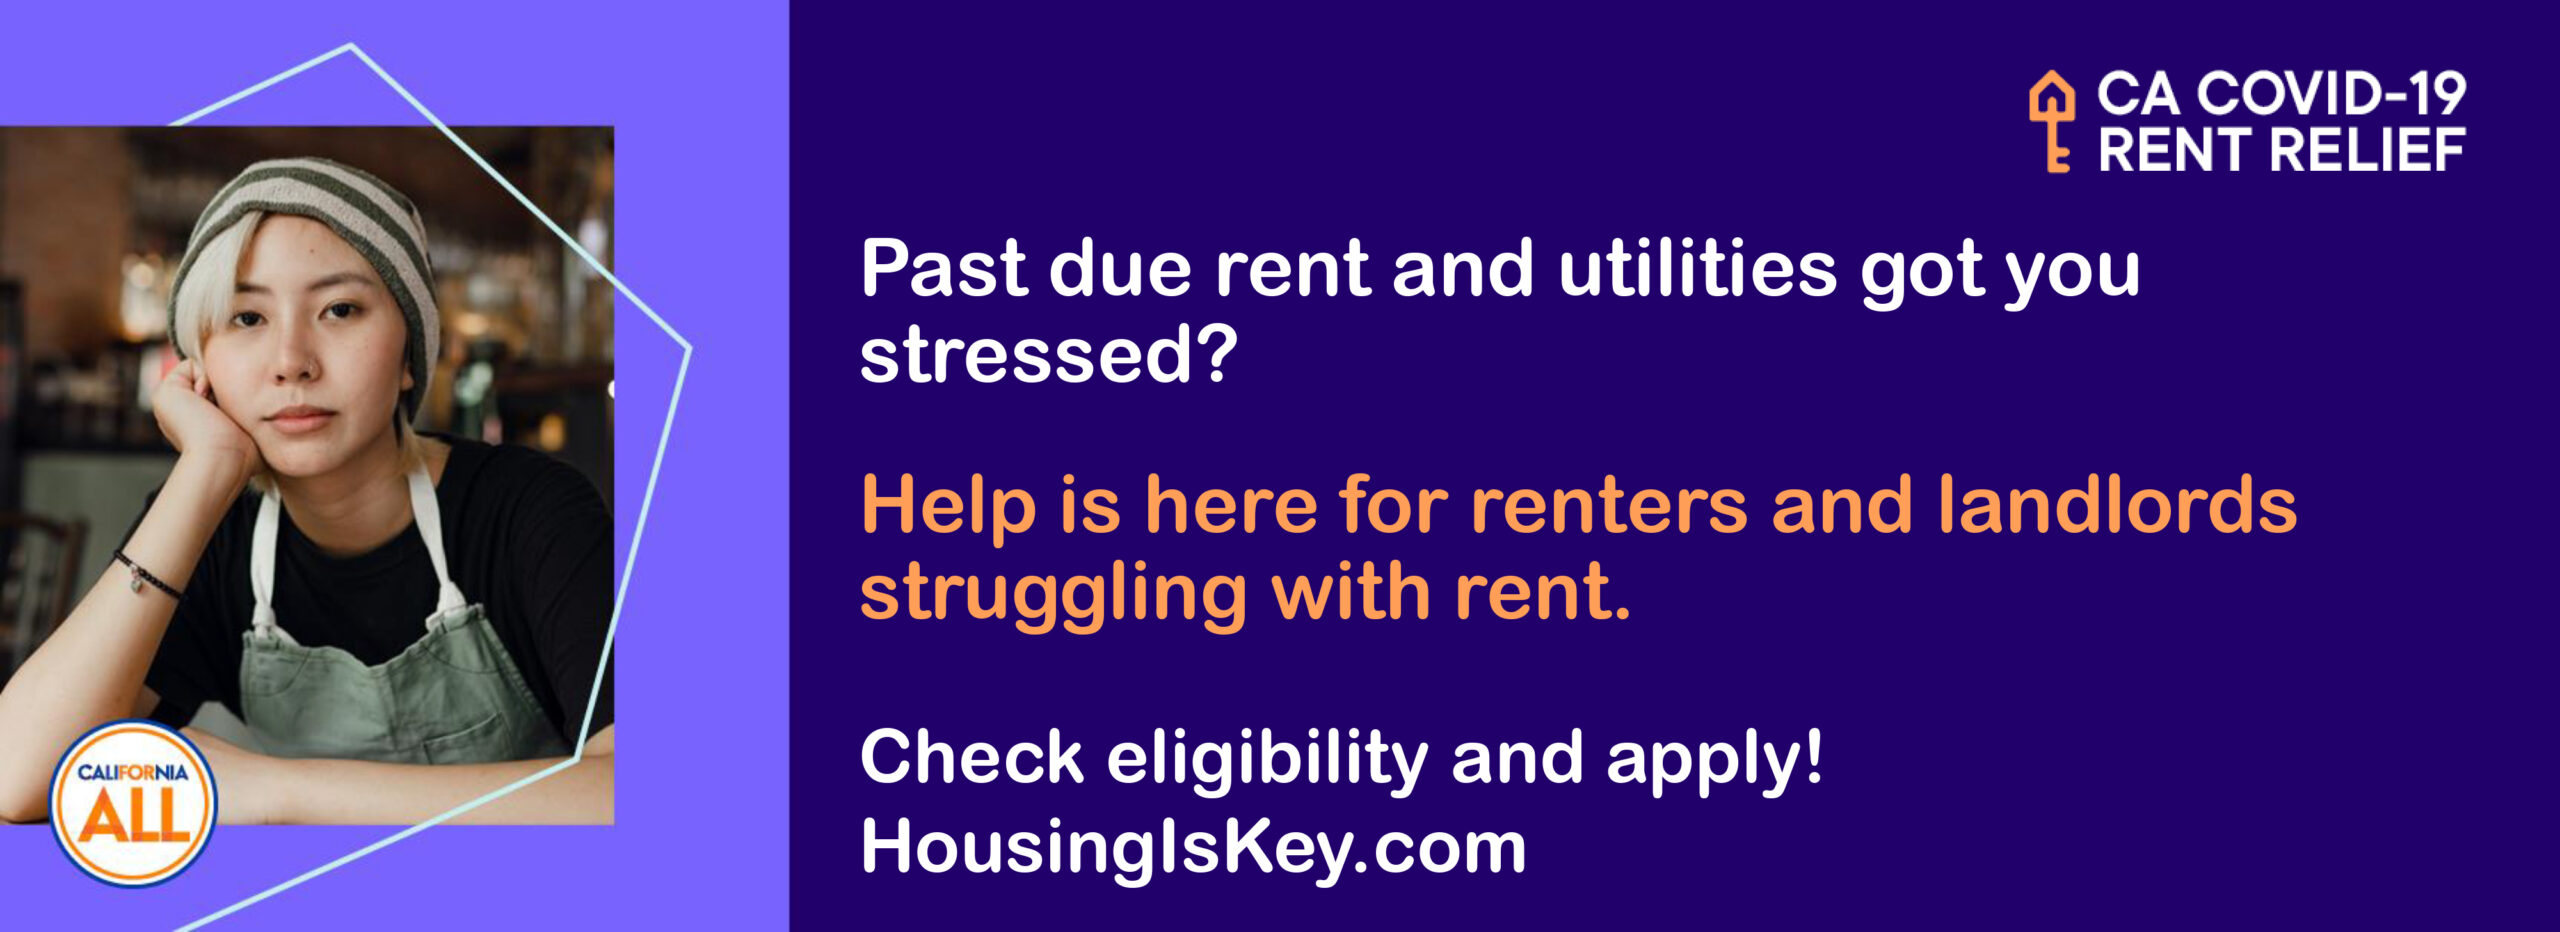 Past due rent and utilities got you stressed?